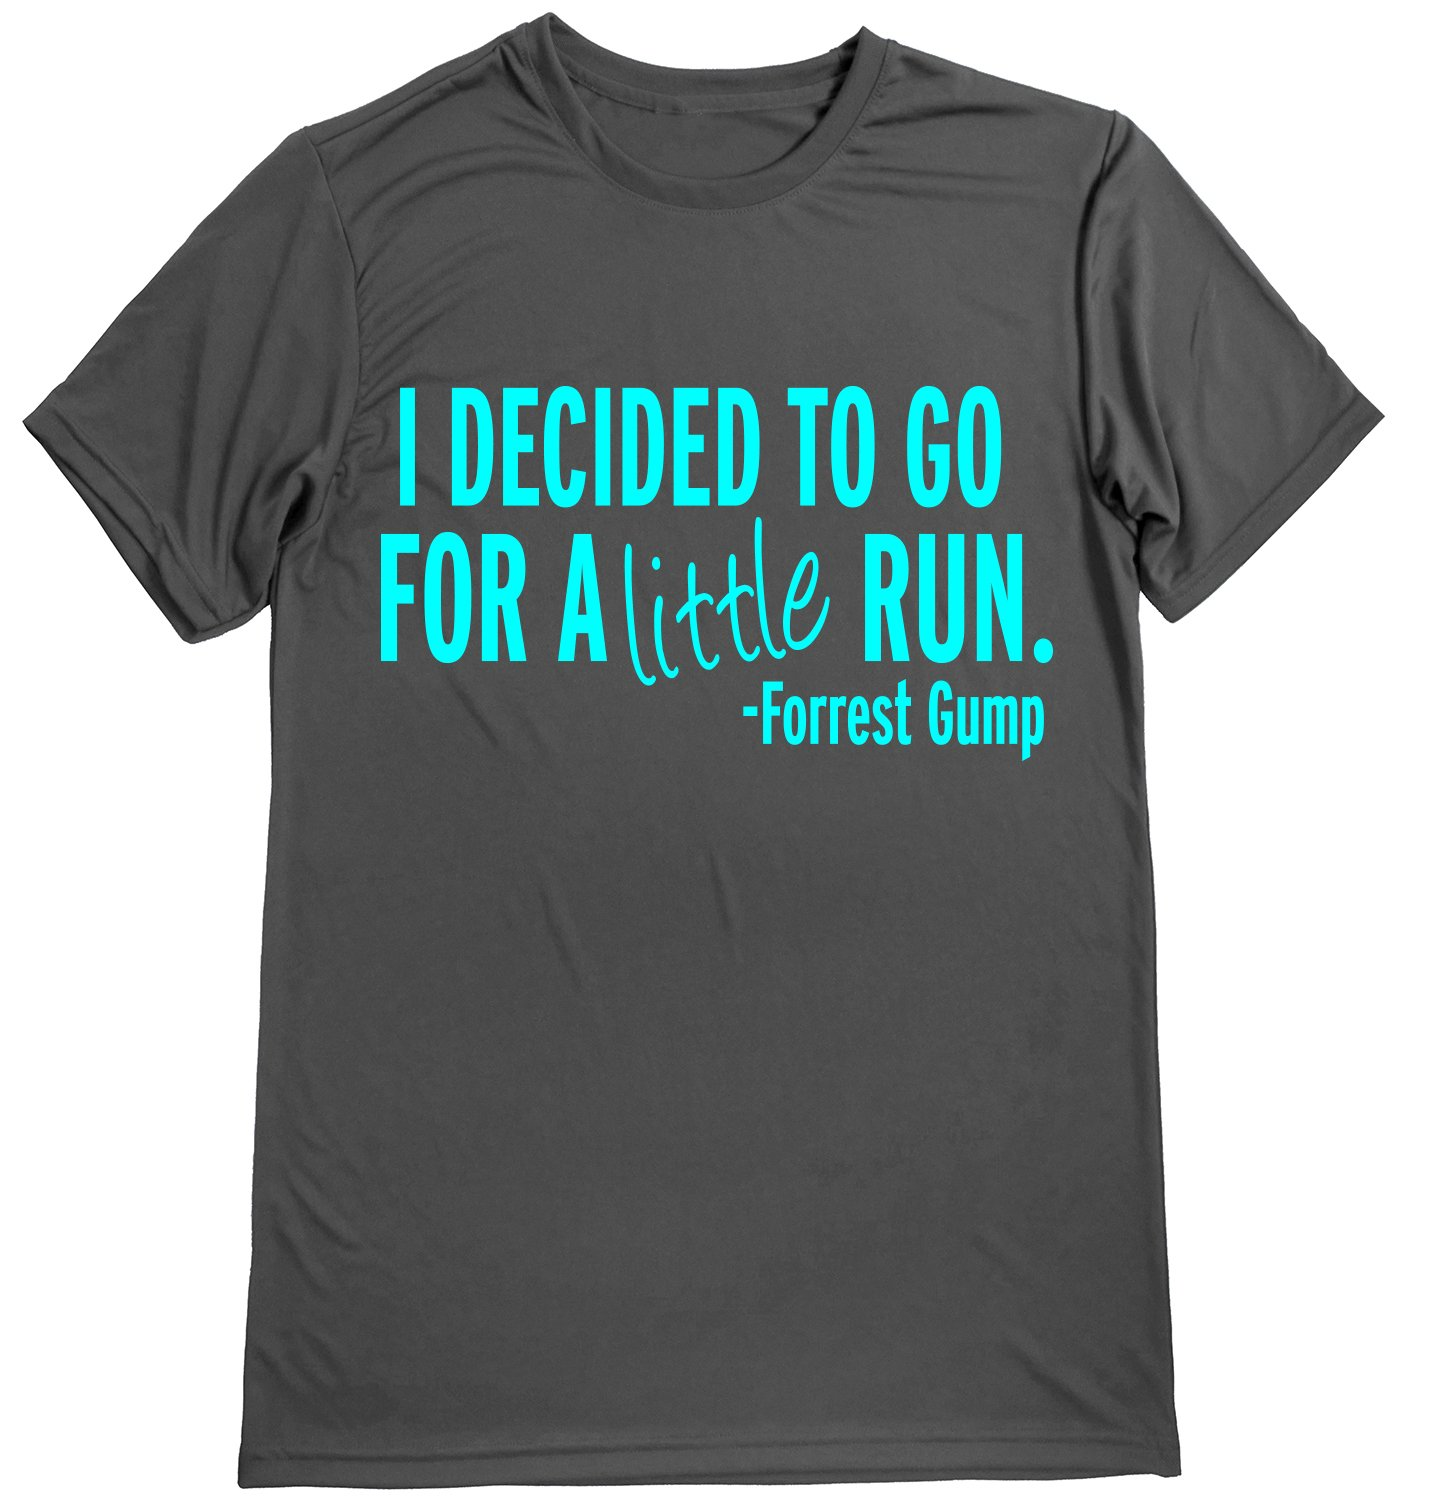 502bc8aea98 Amazon.com: Dry Sports Shirt – Men Runner's T-Shirts - Running Quotes -I  Decided to GO A Little Run - Forrest Gump: Sports & Outdoors